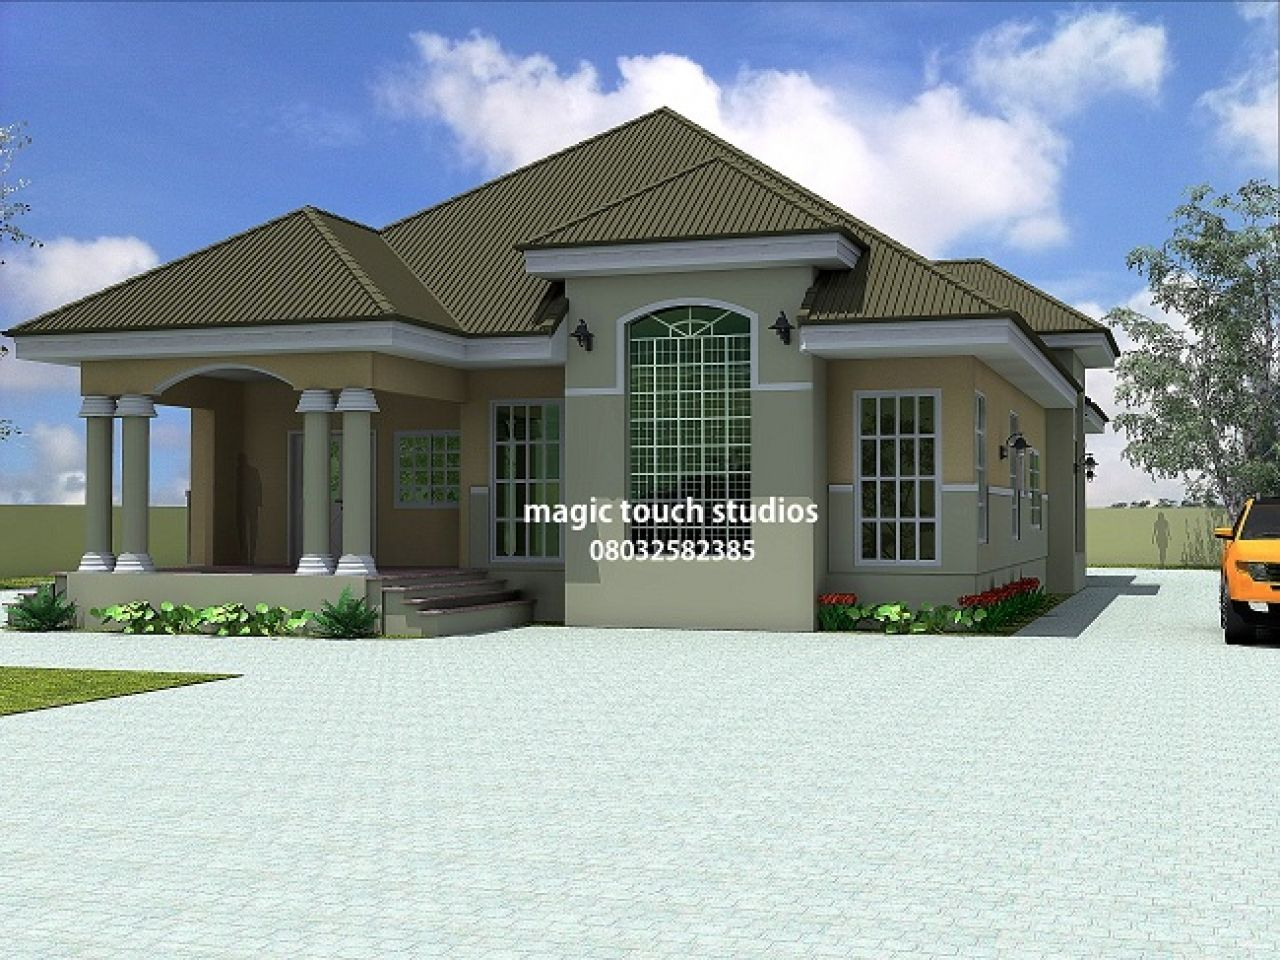 10 Bungalow House Plans To Impress Beautiful House Plans Modern Bungalow House Modern House Plans